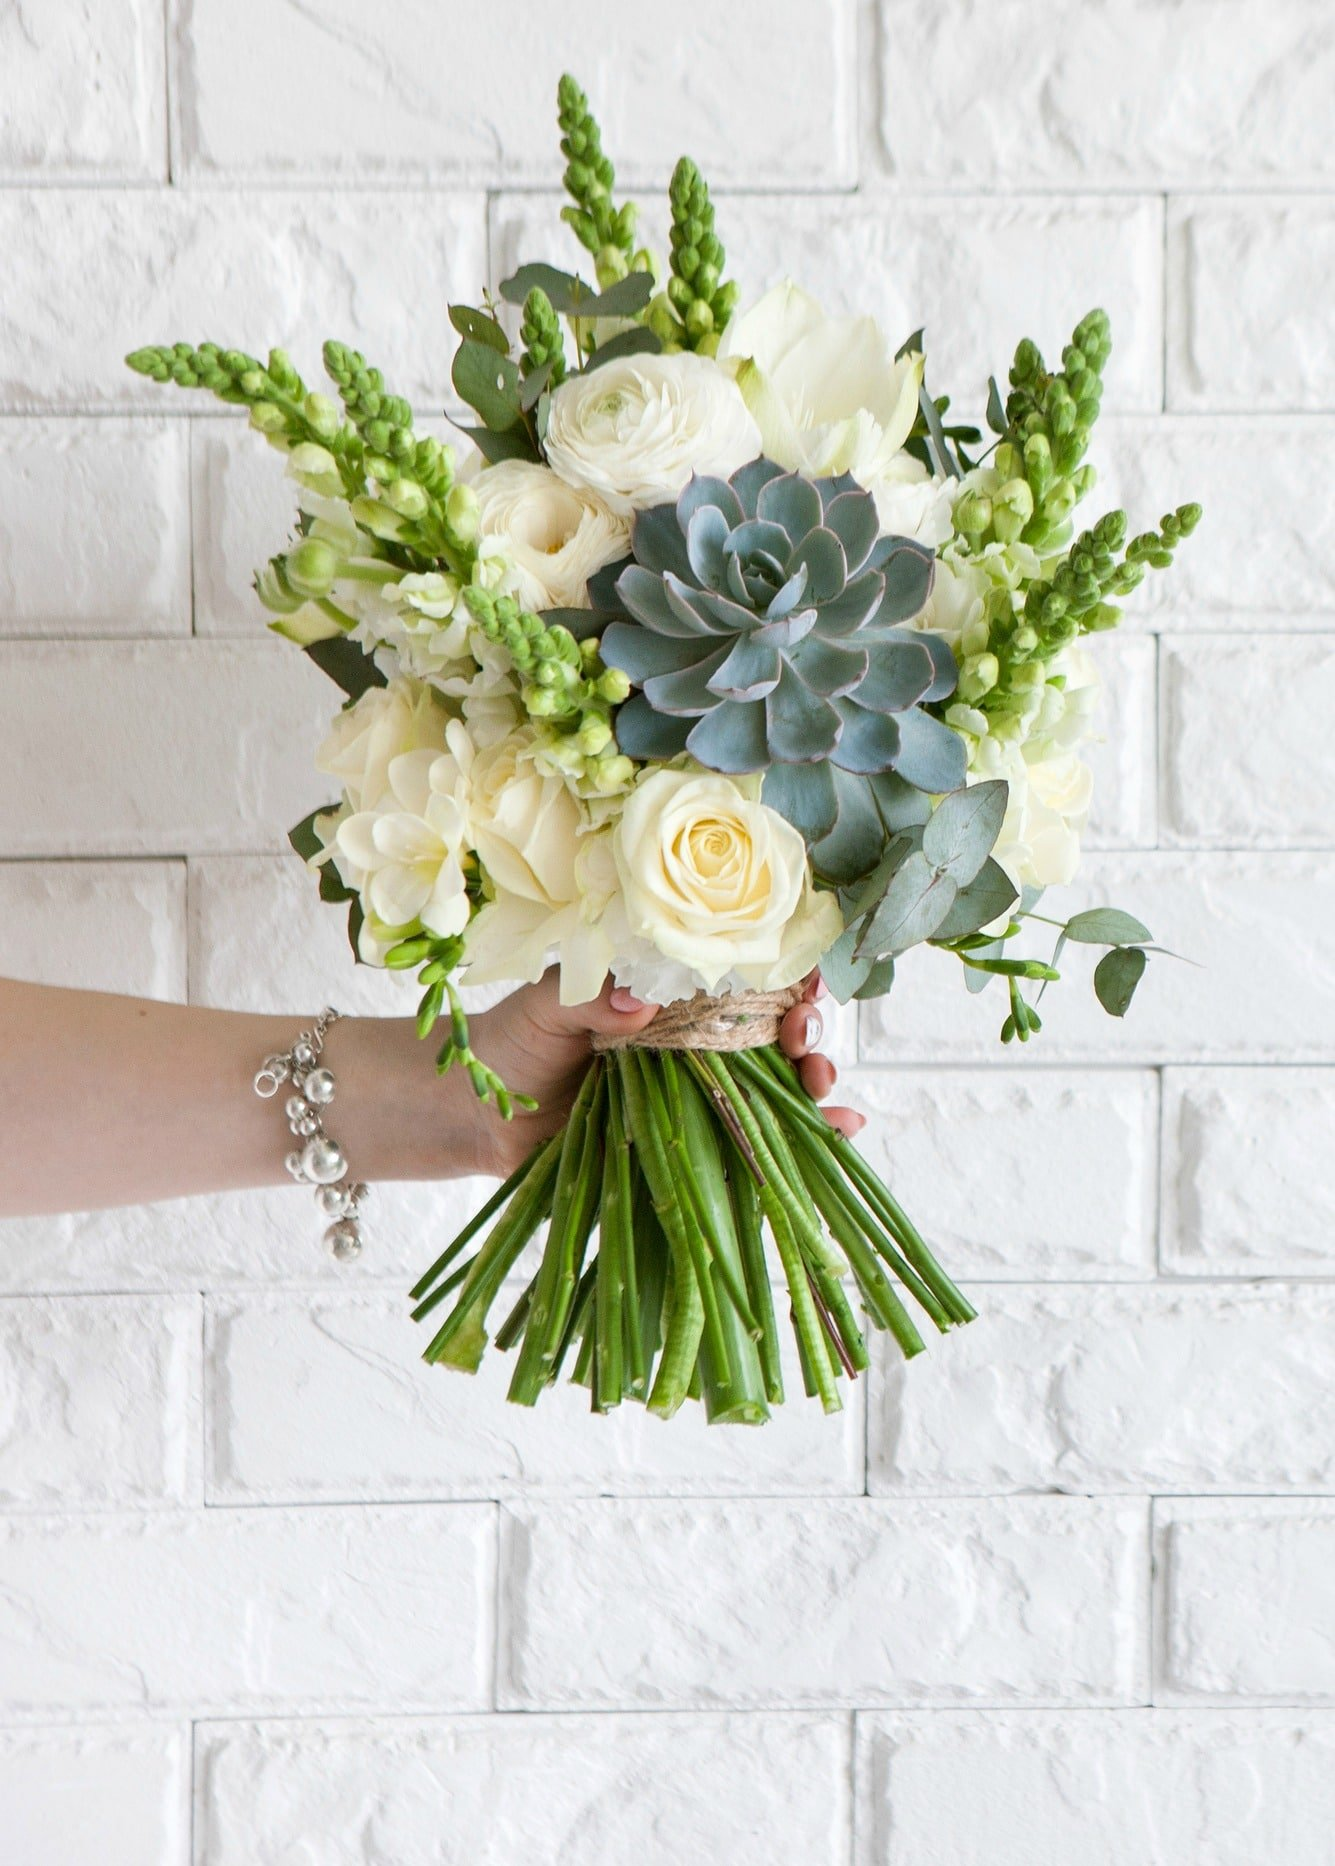 Succulent bouquet with white roses